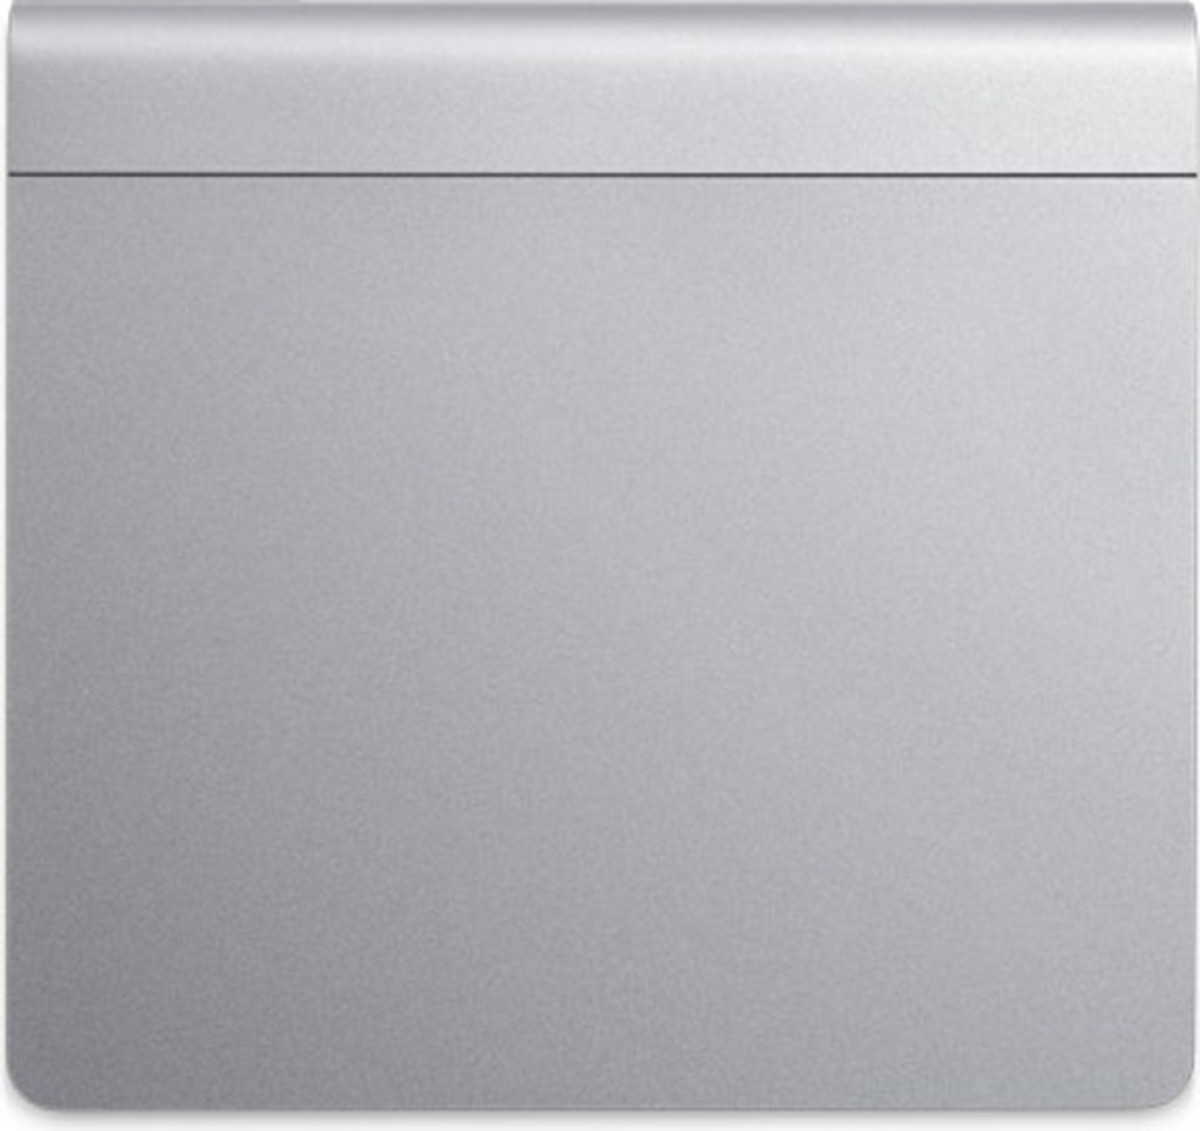 apple-trackpad-2